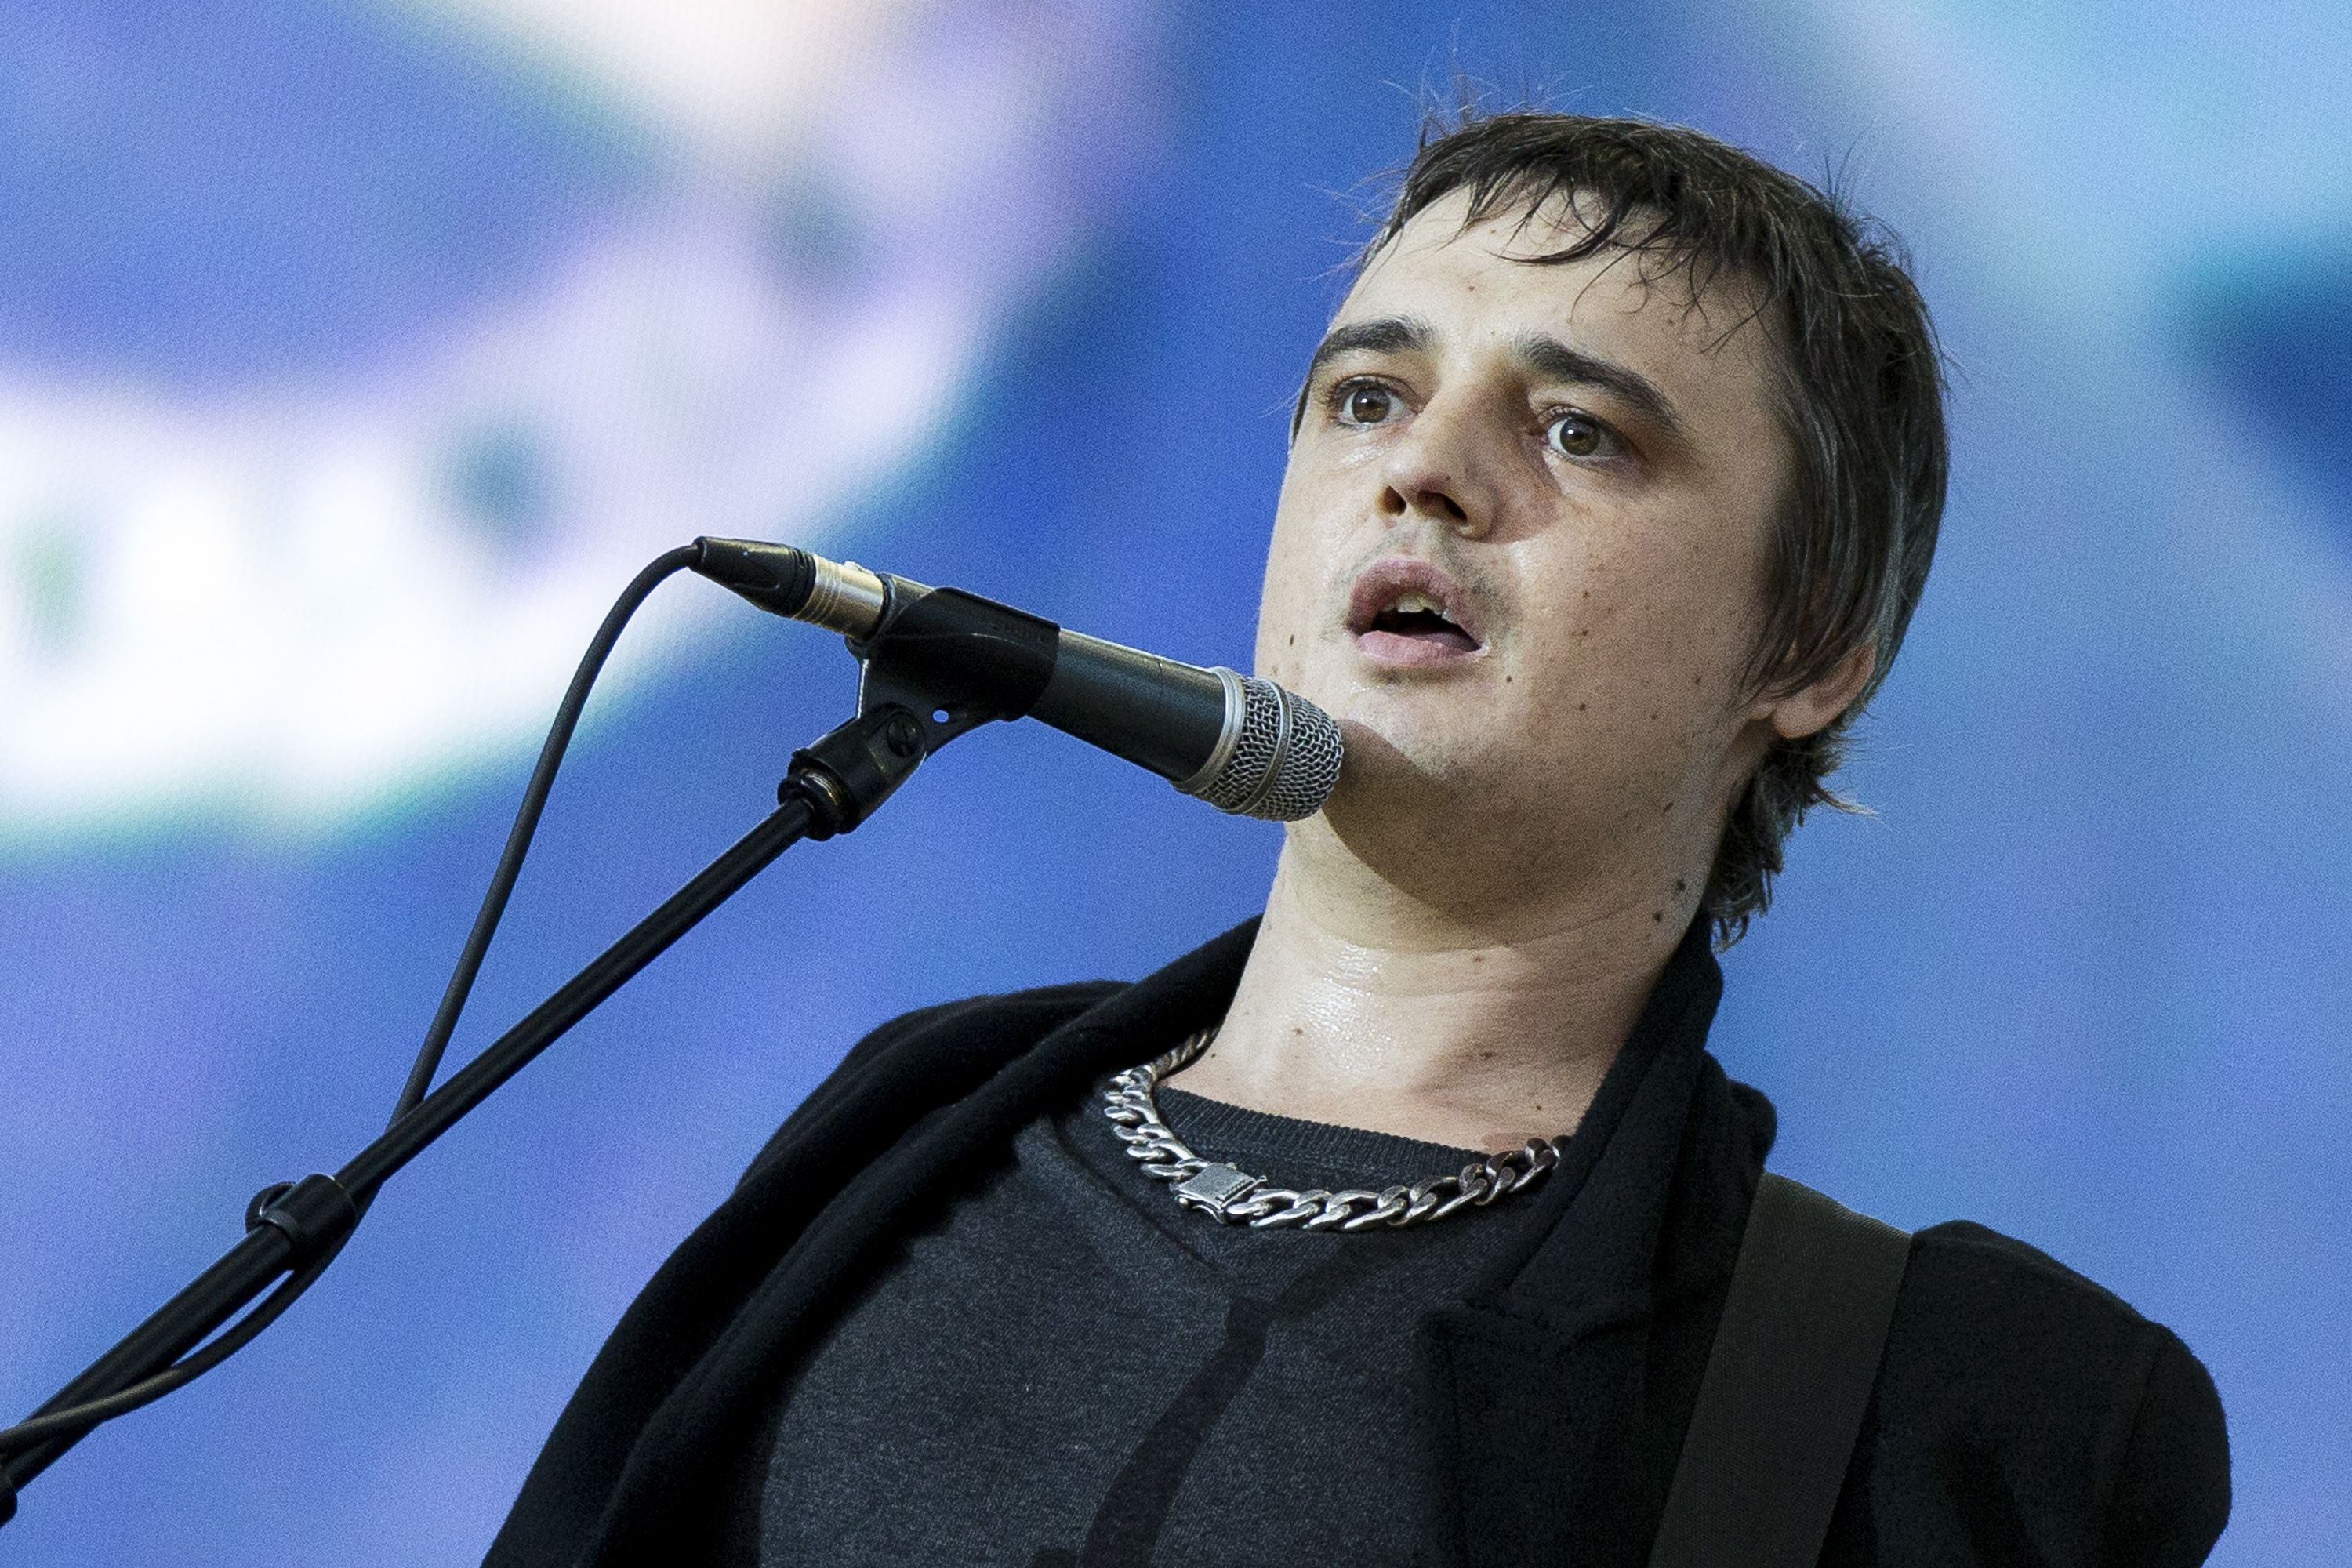 LONDON, ENGLAND - JULY 05:  Pete Doherty of The Libertines performs on stage at British Summer Time Festival at Hyde Park on